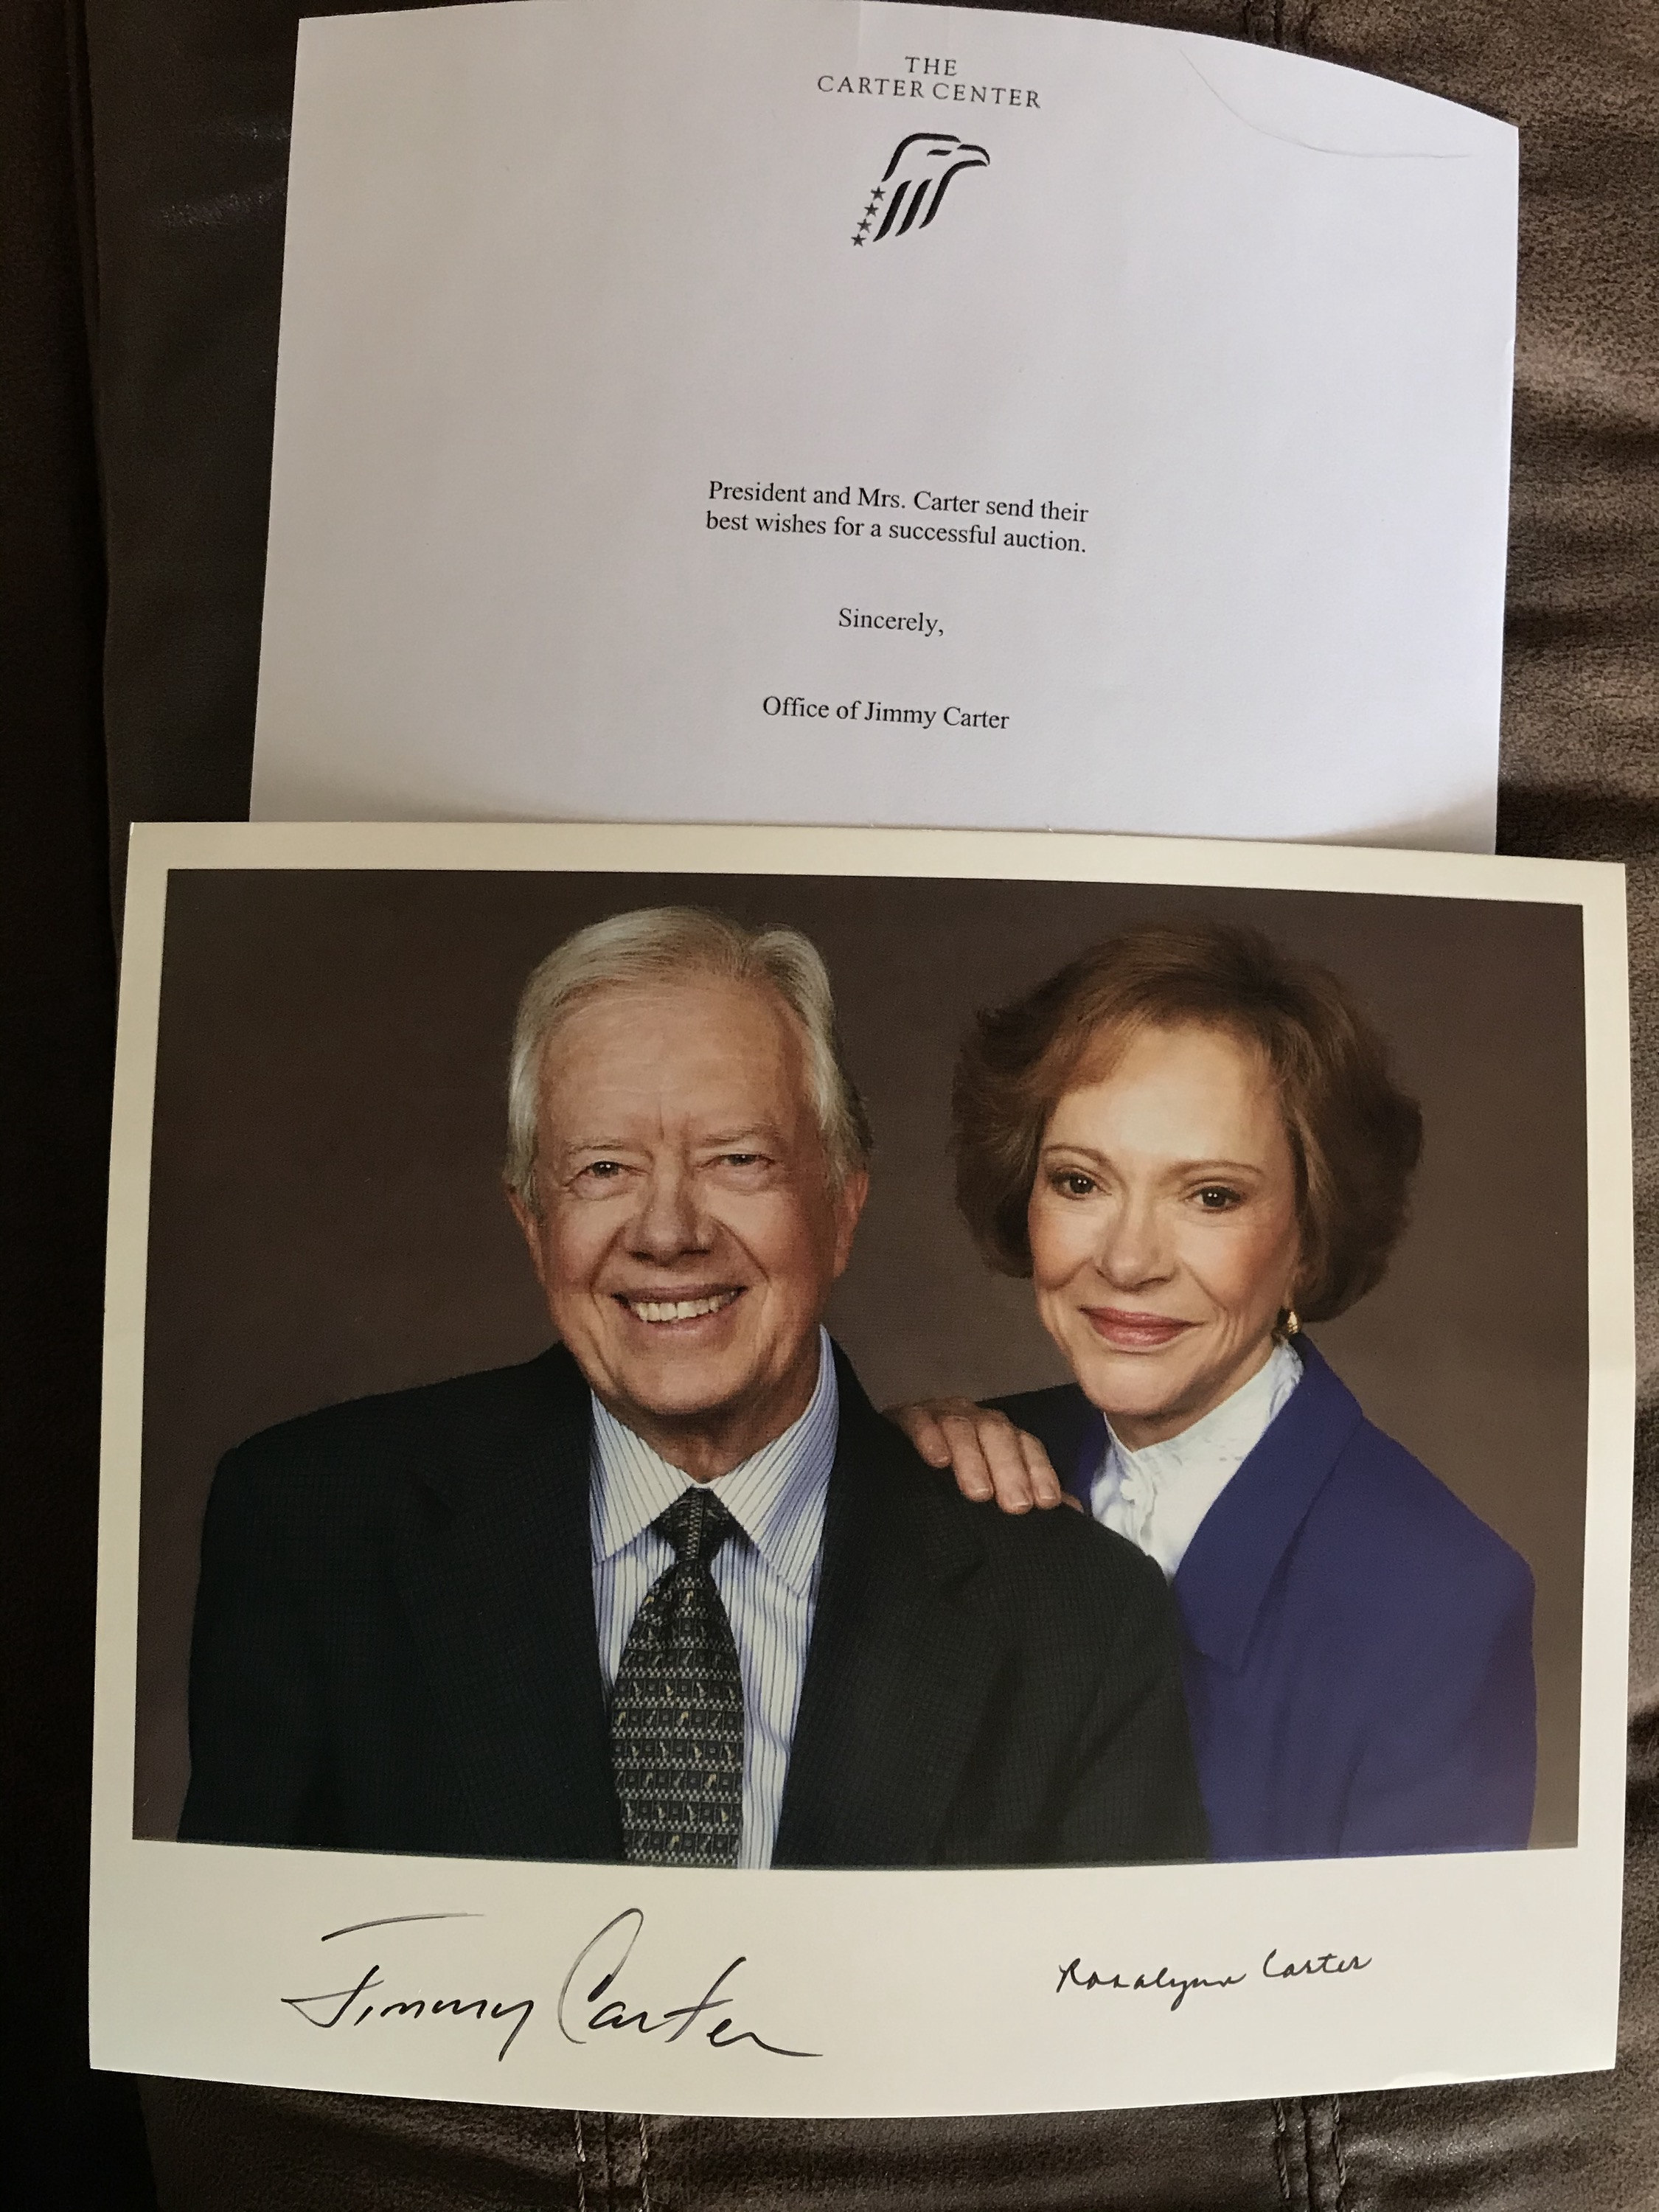 President and Mrs. Carter autographed 8x10 photo!